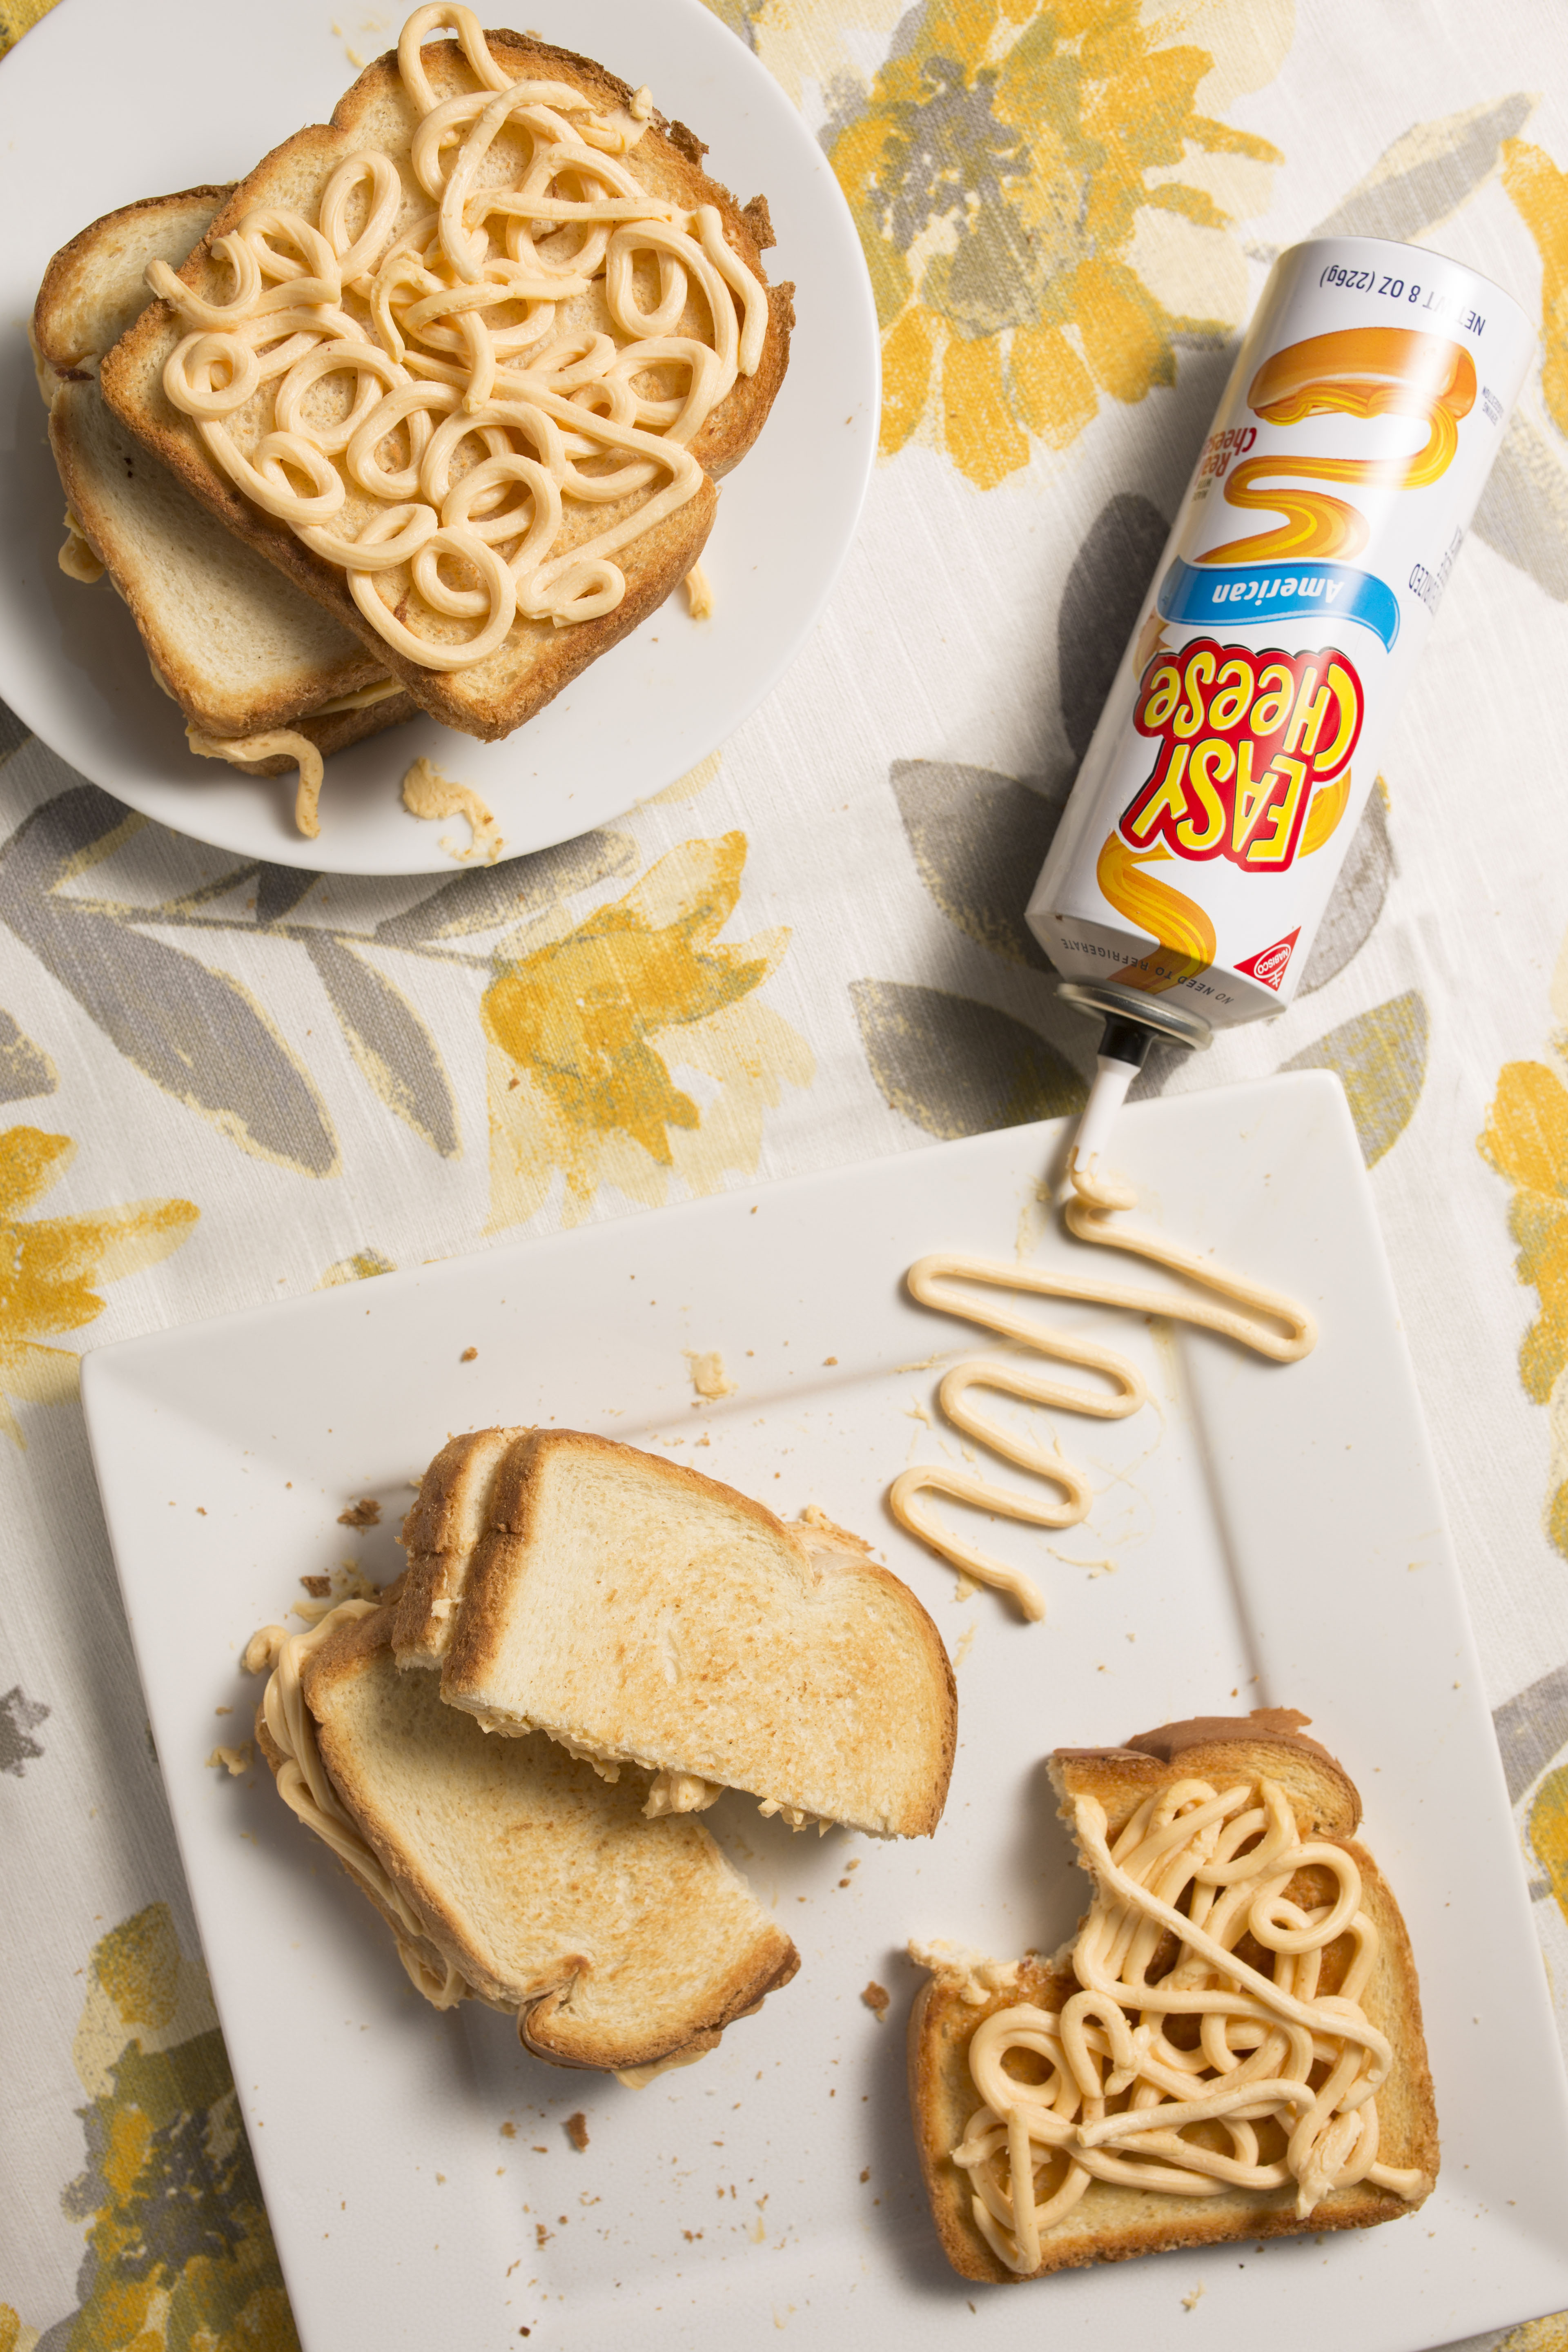 GRILLED CHEESE WIZ